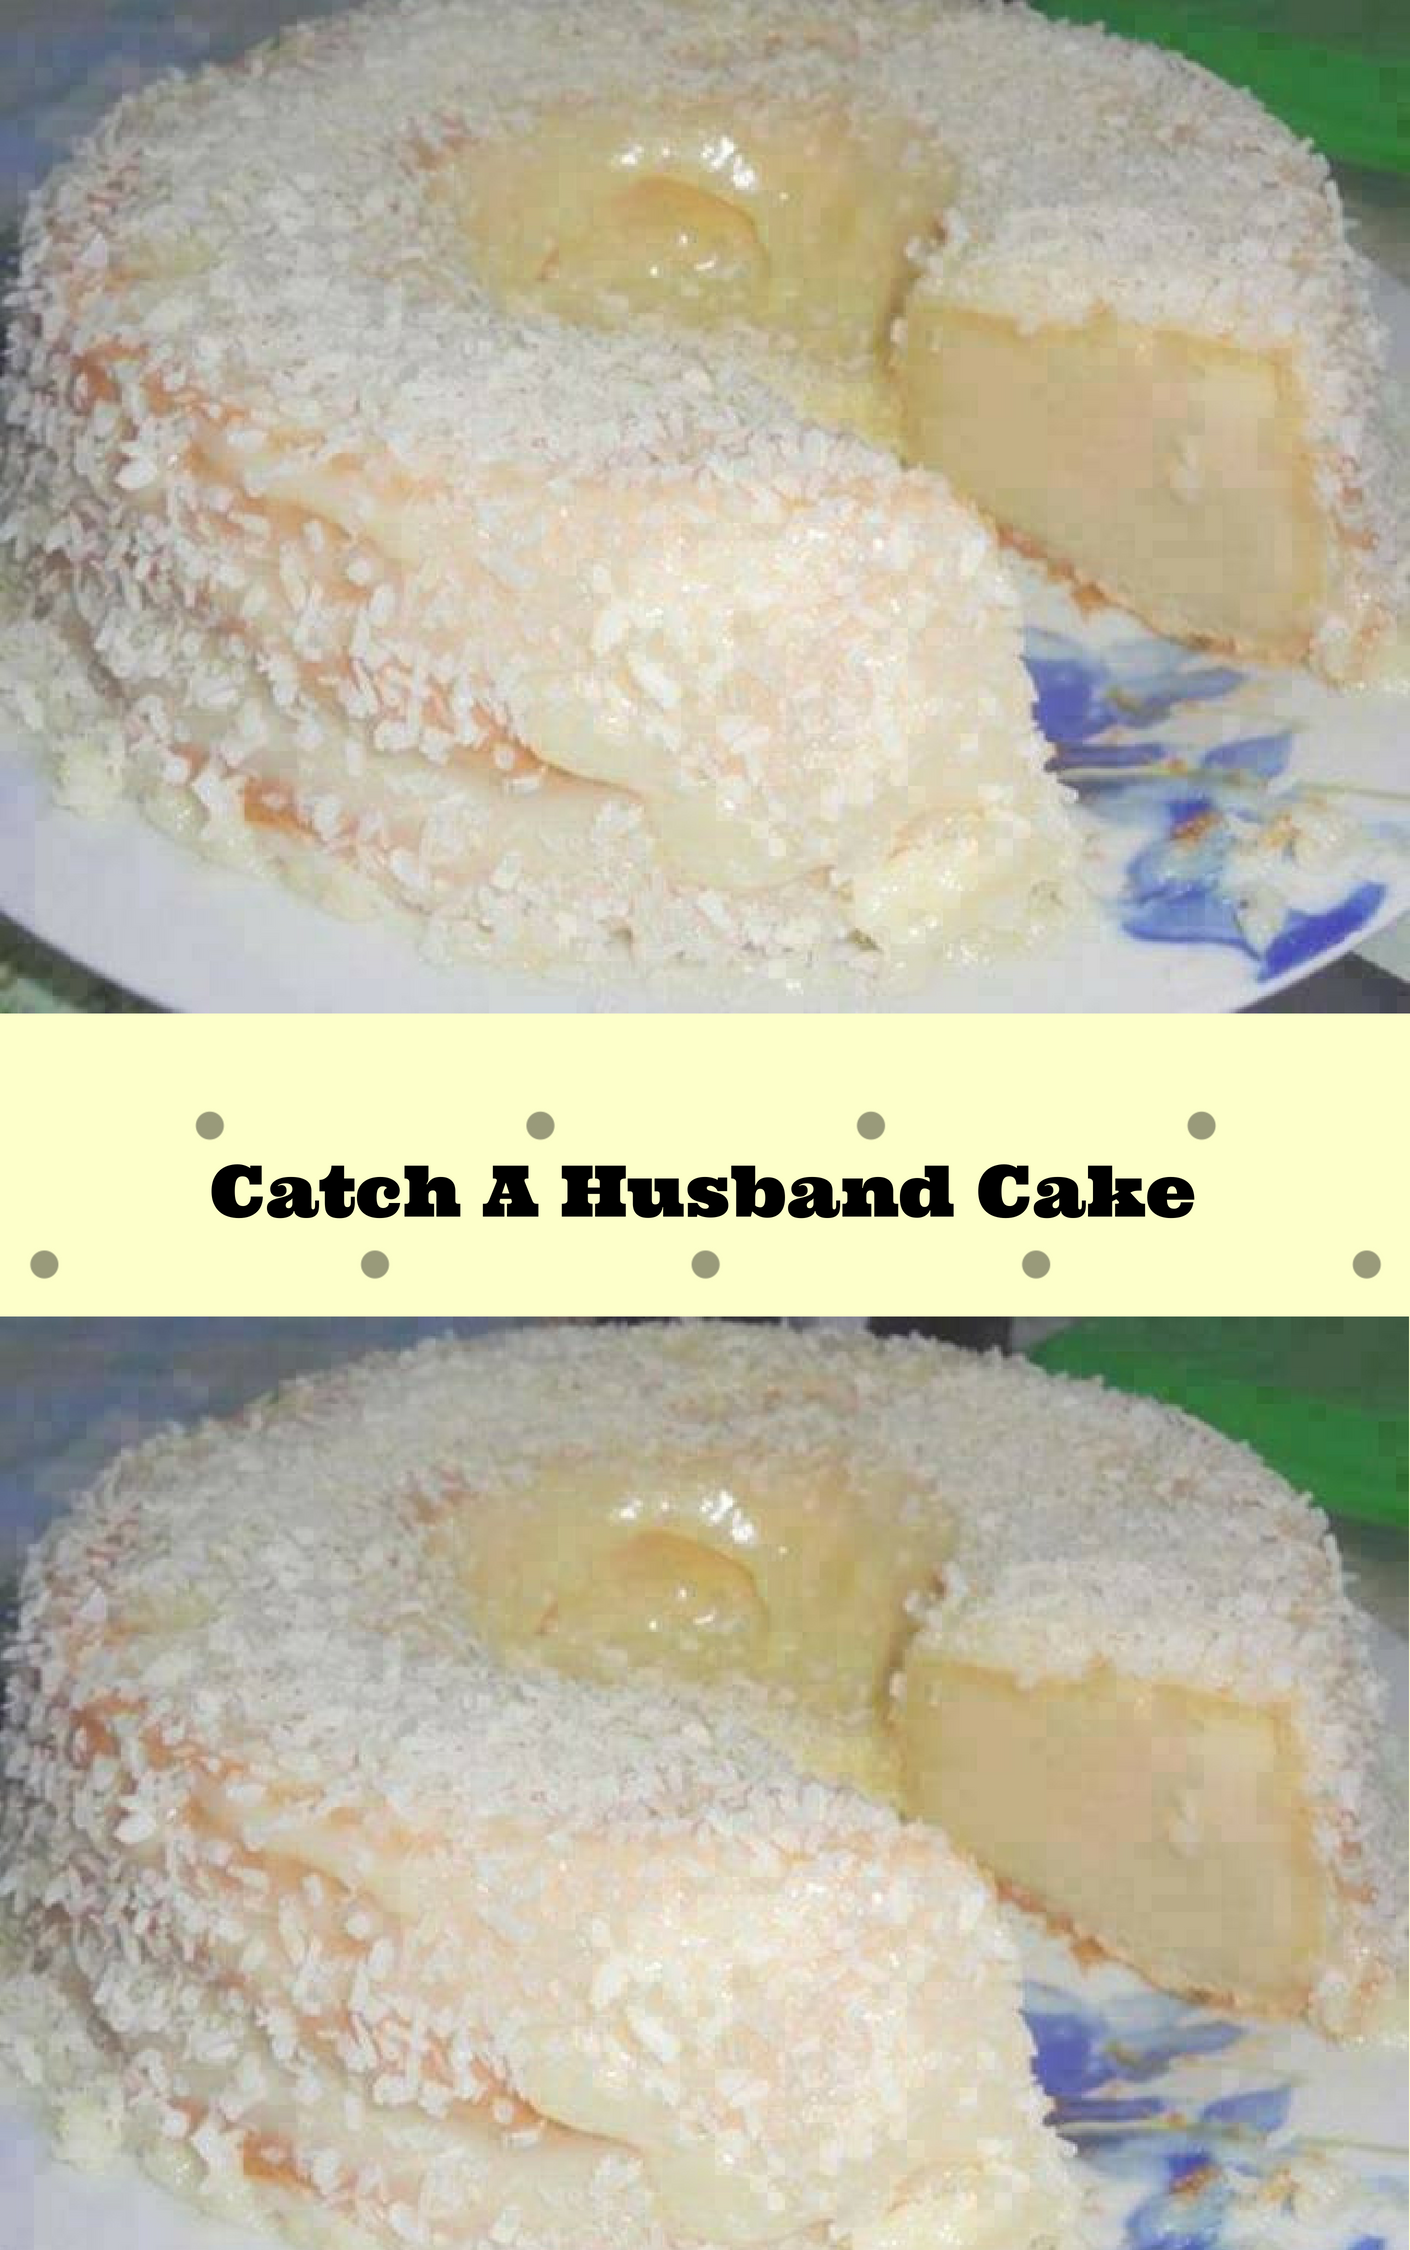 The Reason Why I Named This Catch A Husband Cake Is Because Of The